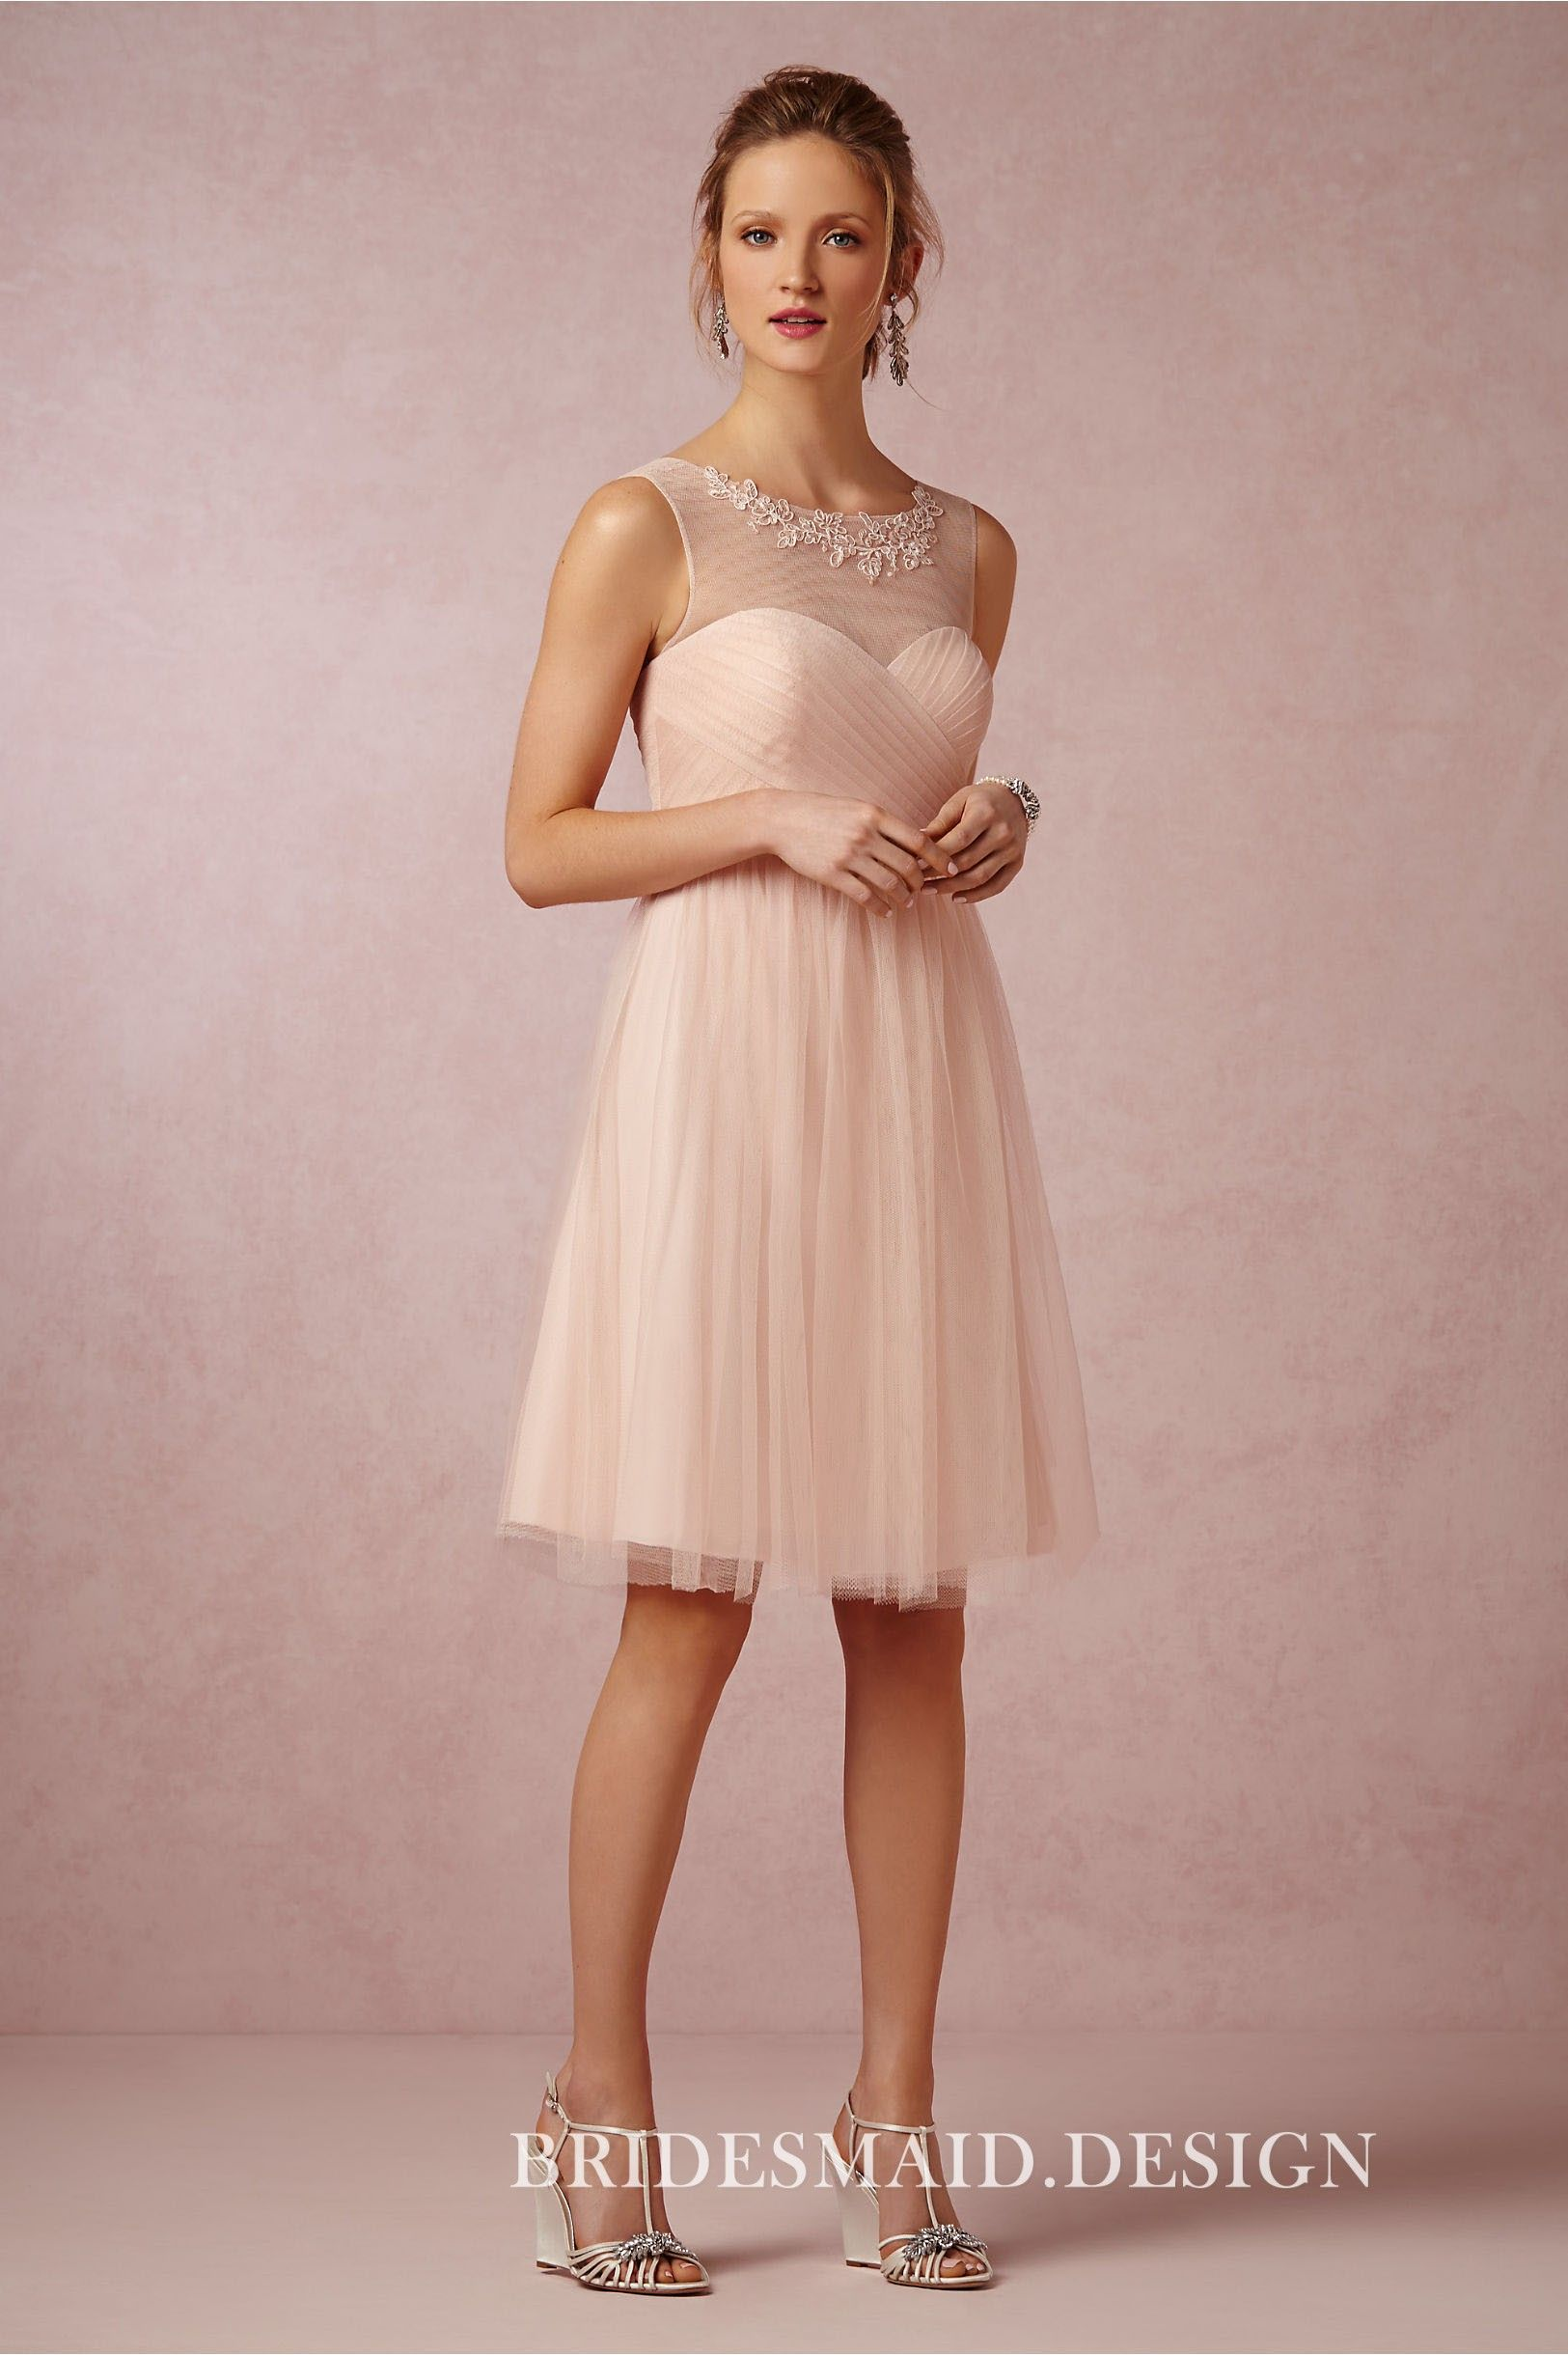 Blush Chiffon Knee Length A Line Bridesmaid Dress With Tulle Overlay Lace Appl Blush Bridesmaid Dresses Knee Length Bridesmaid Dresses Pink Bridesmaid Dresses